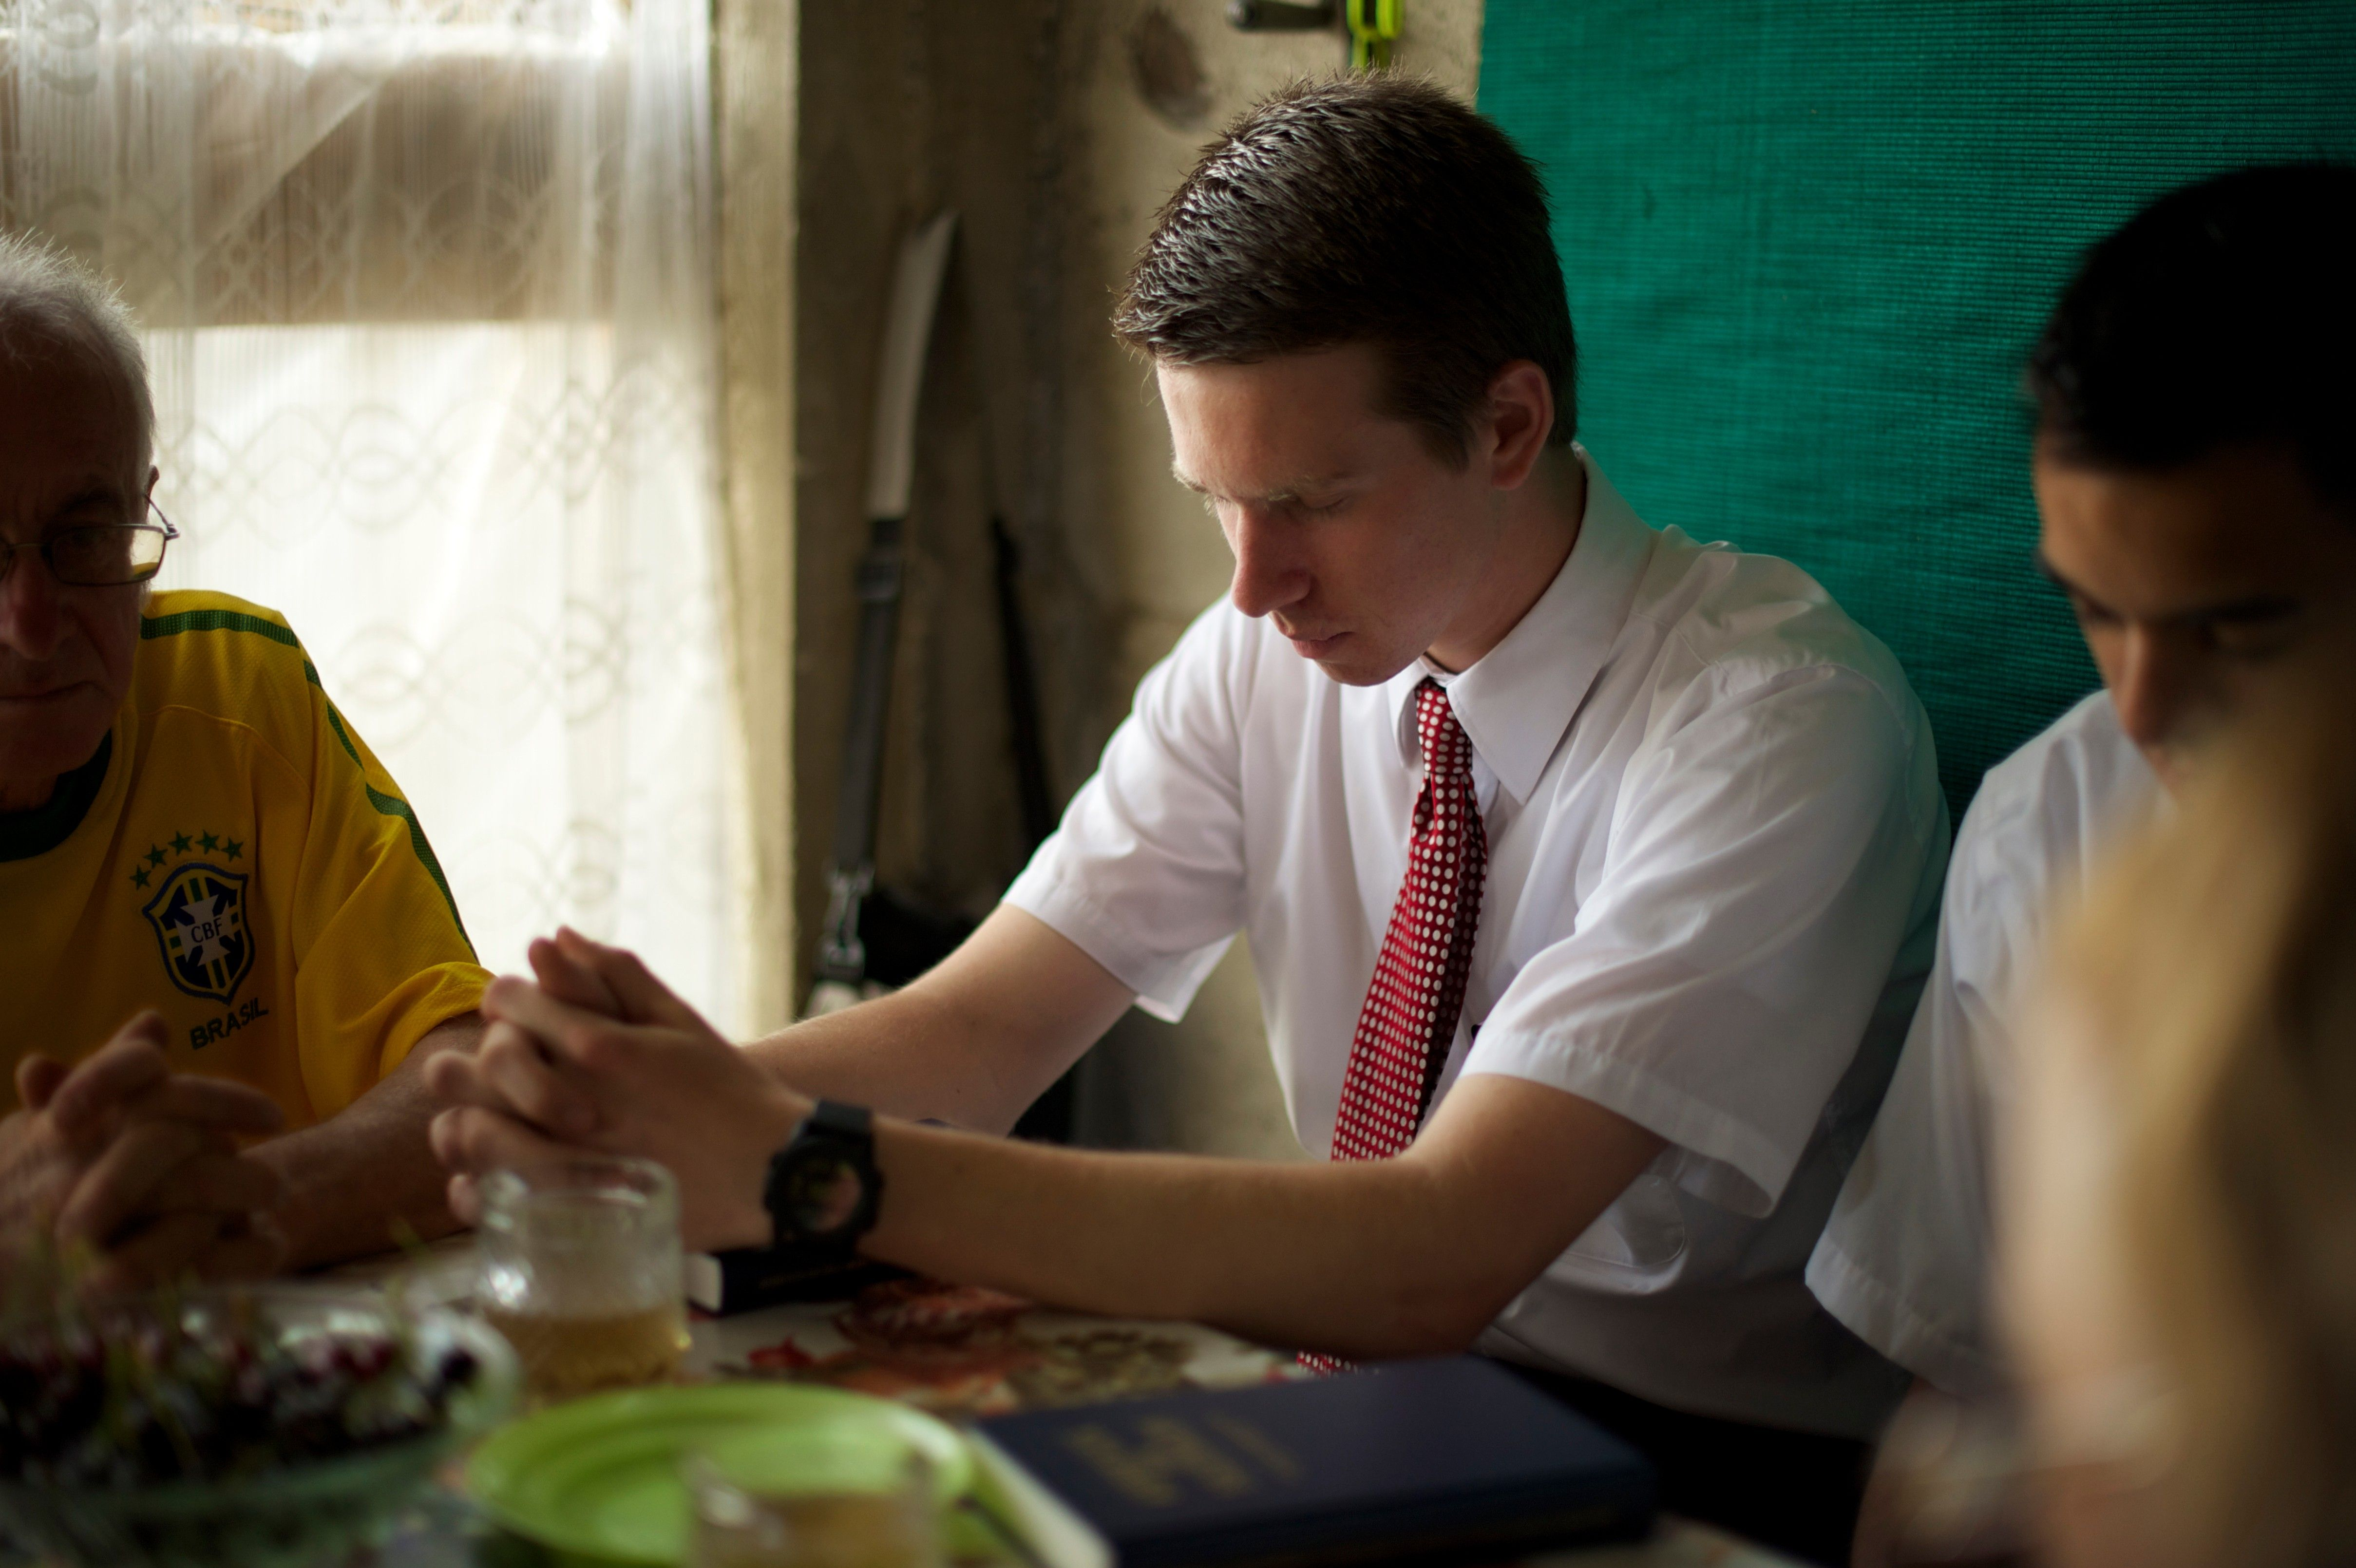 Missionaries pray at the dinner table.